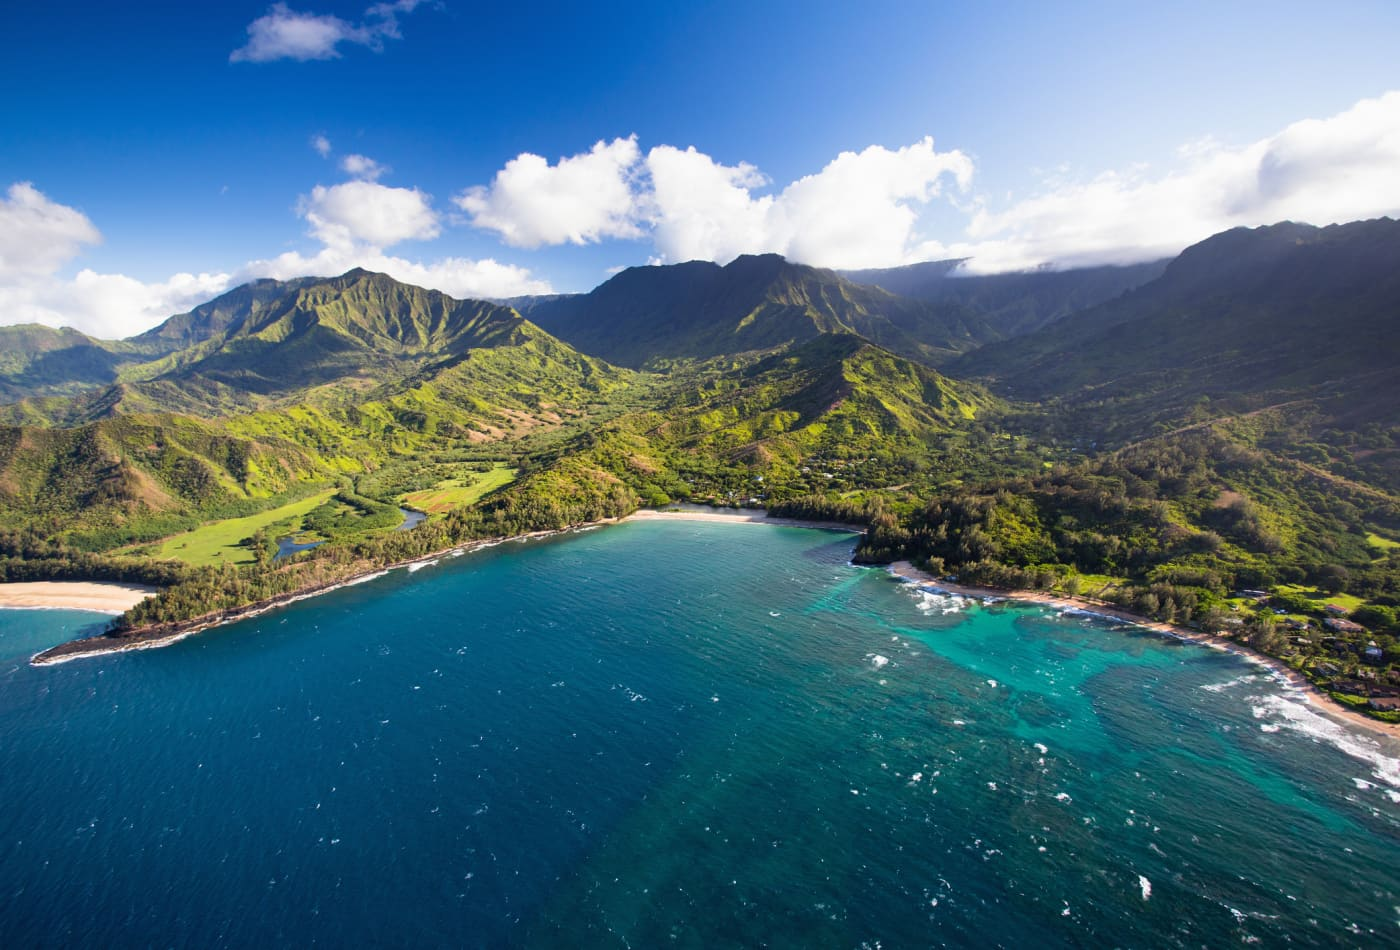 The experts' guide to planning a trip to Hawaii